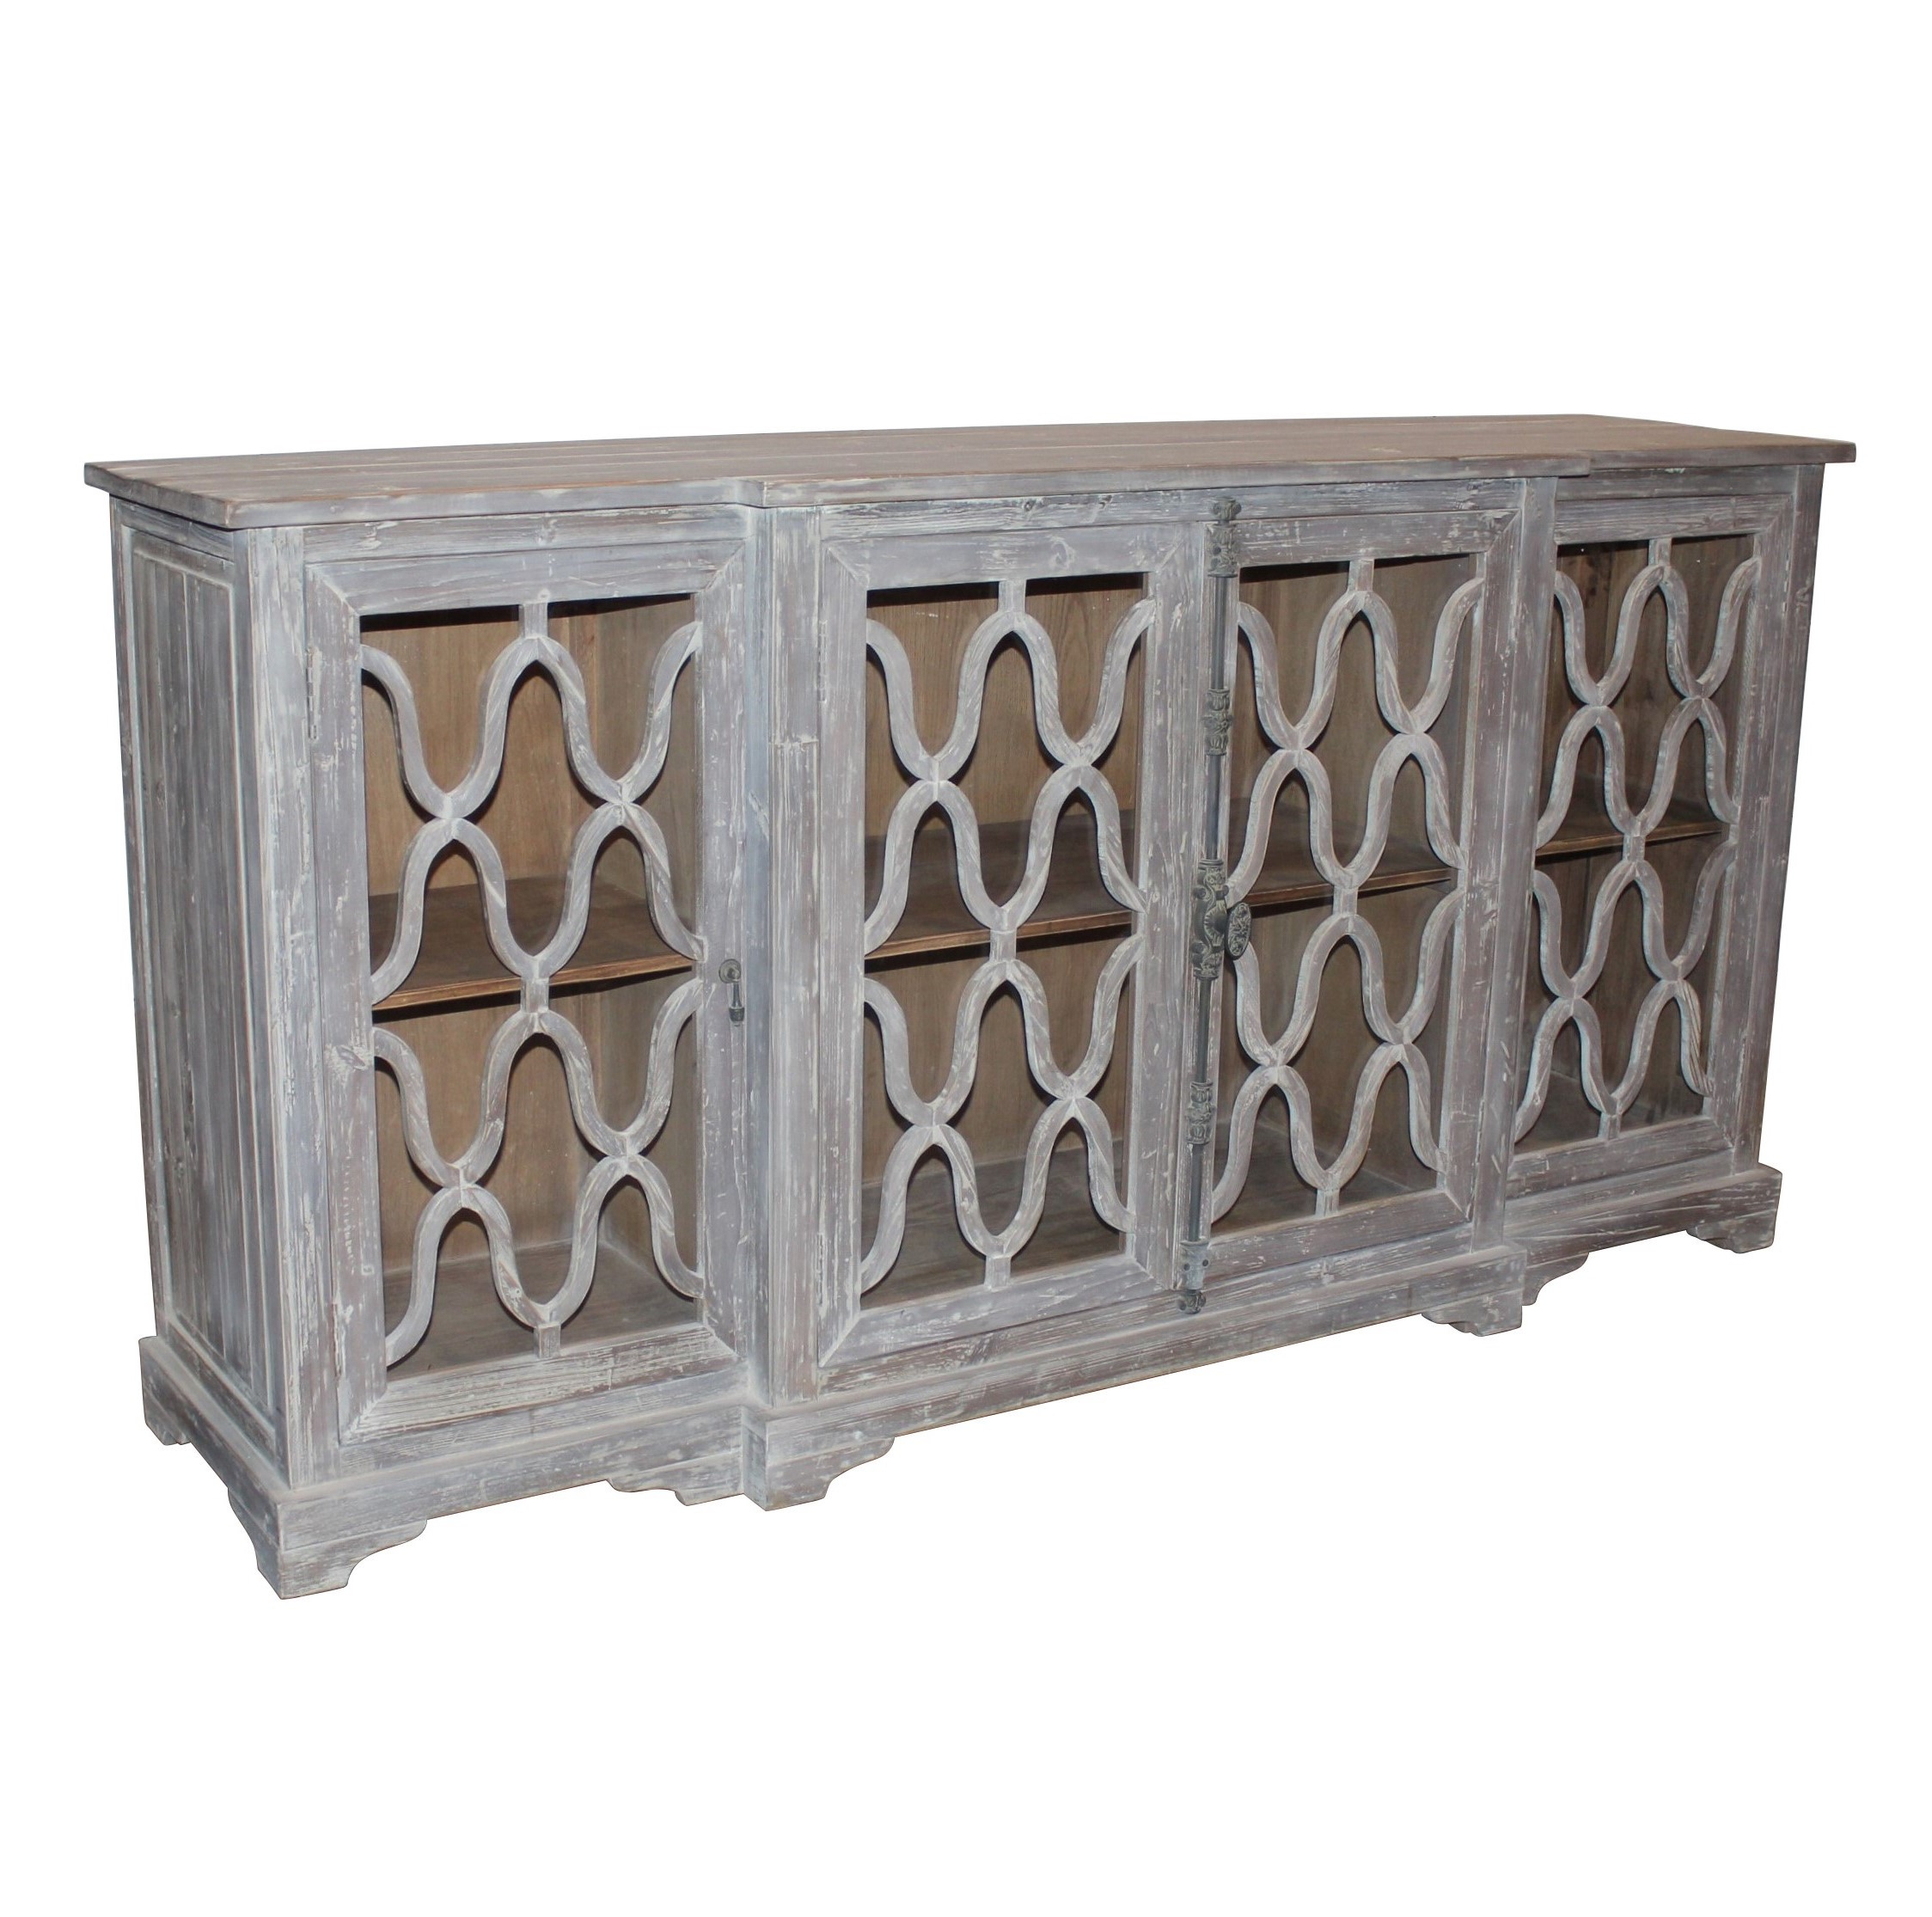 Trendy Reclaimed Pine & Iron 4 Door Sideboards With Regard To Quincy Sideboard – White X White – Antique And Fine Decor For The Home. (Gallery 5 of 20)